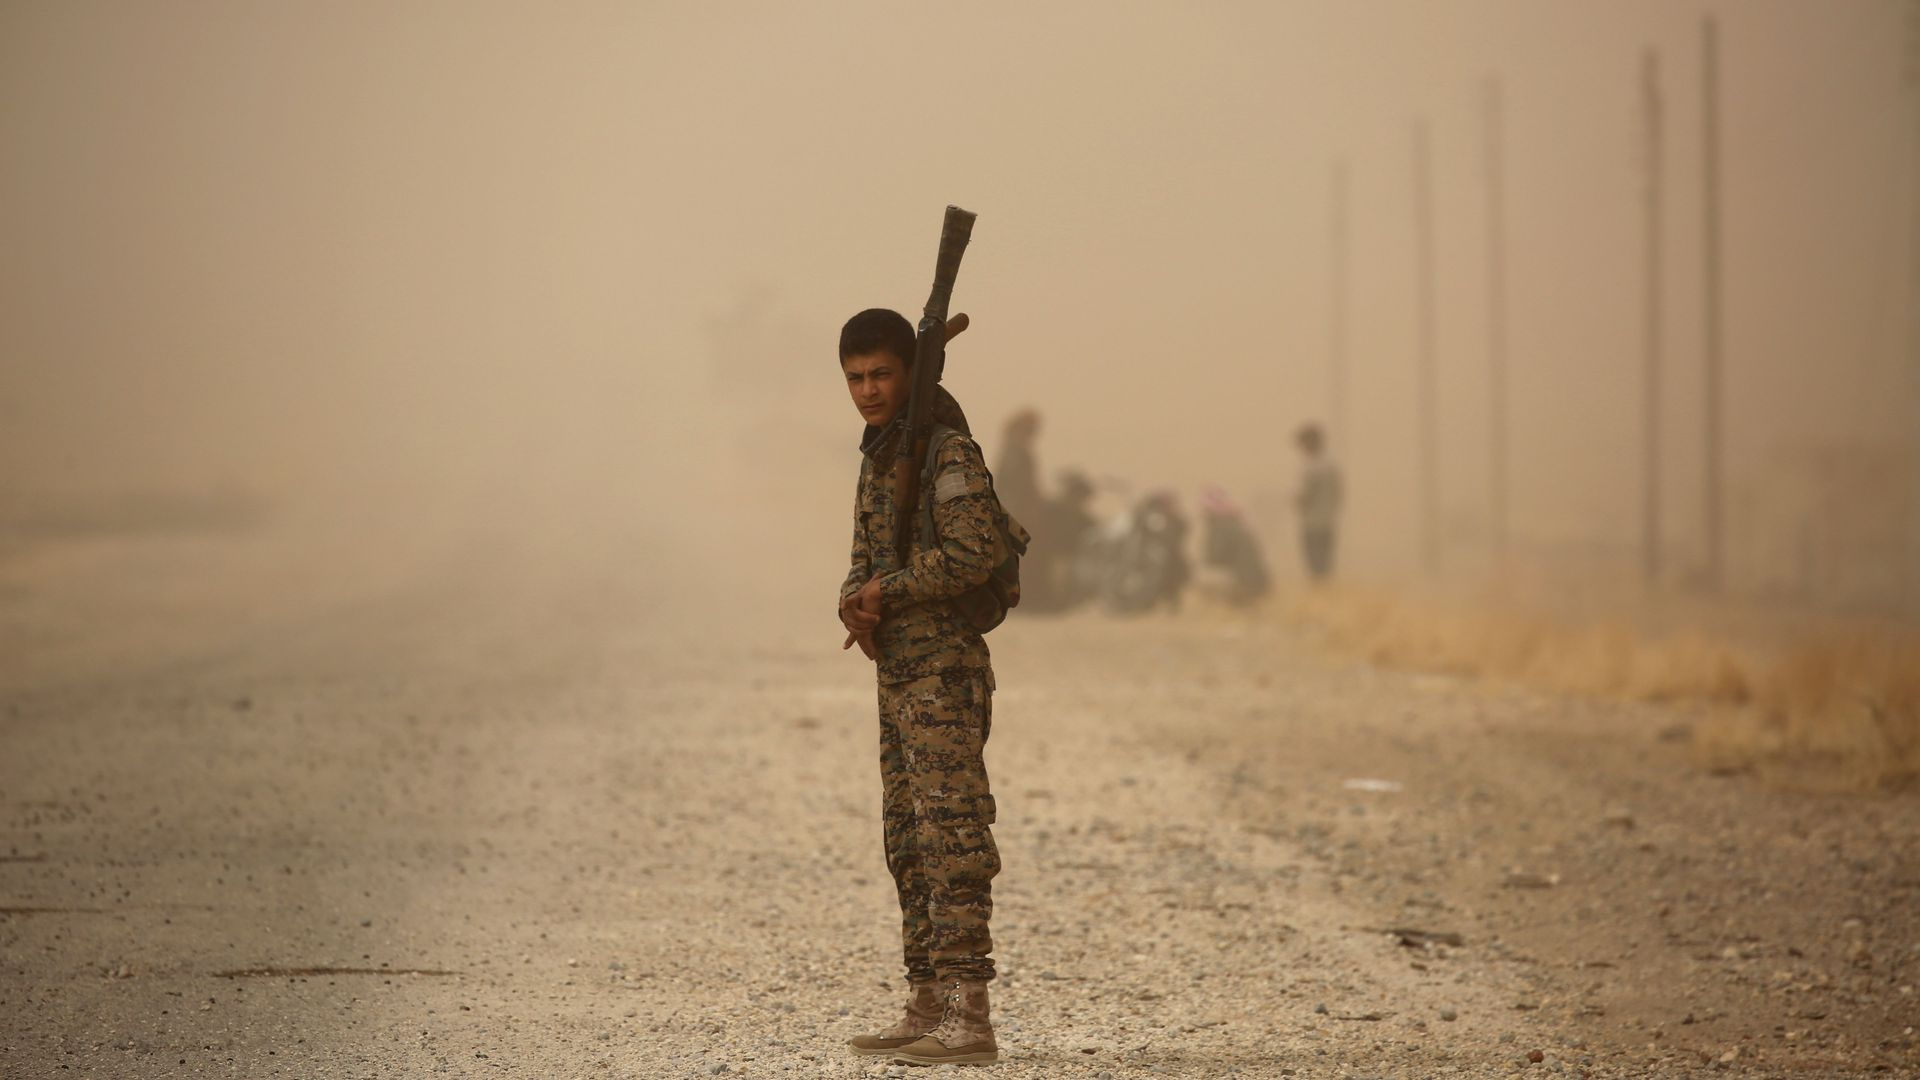 A member of the Syrian Democratic Forces stands with a weapon in a sandstorm.